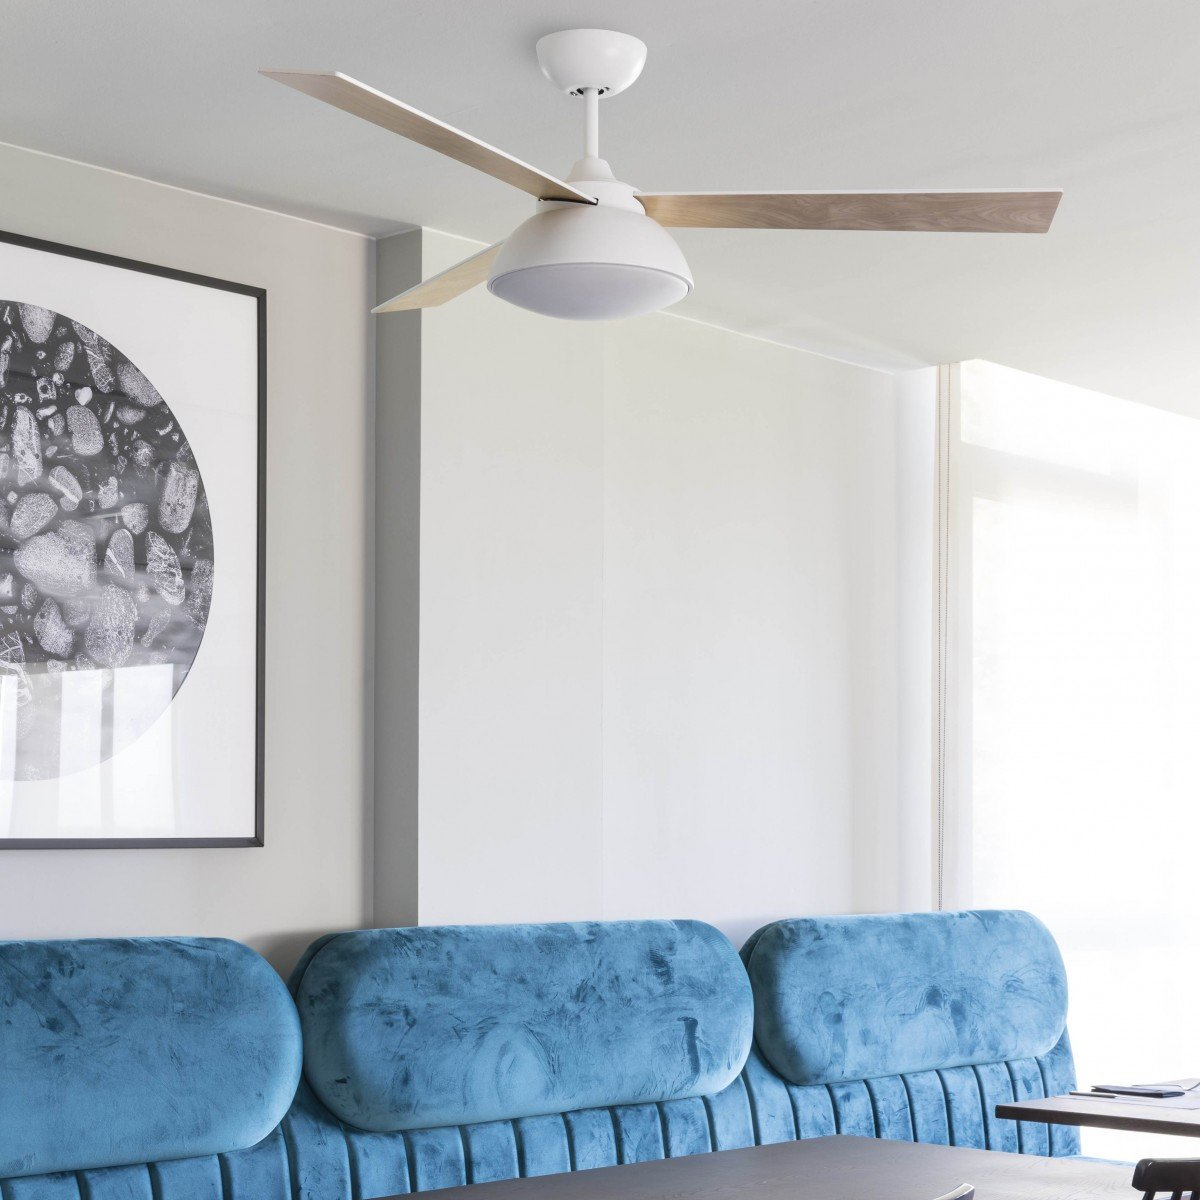 Discover the new ceiling fans of Faro Barcelona